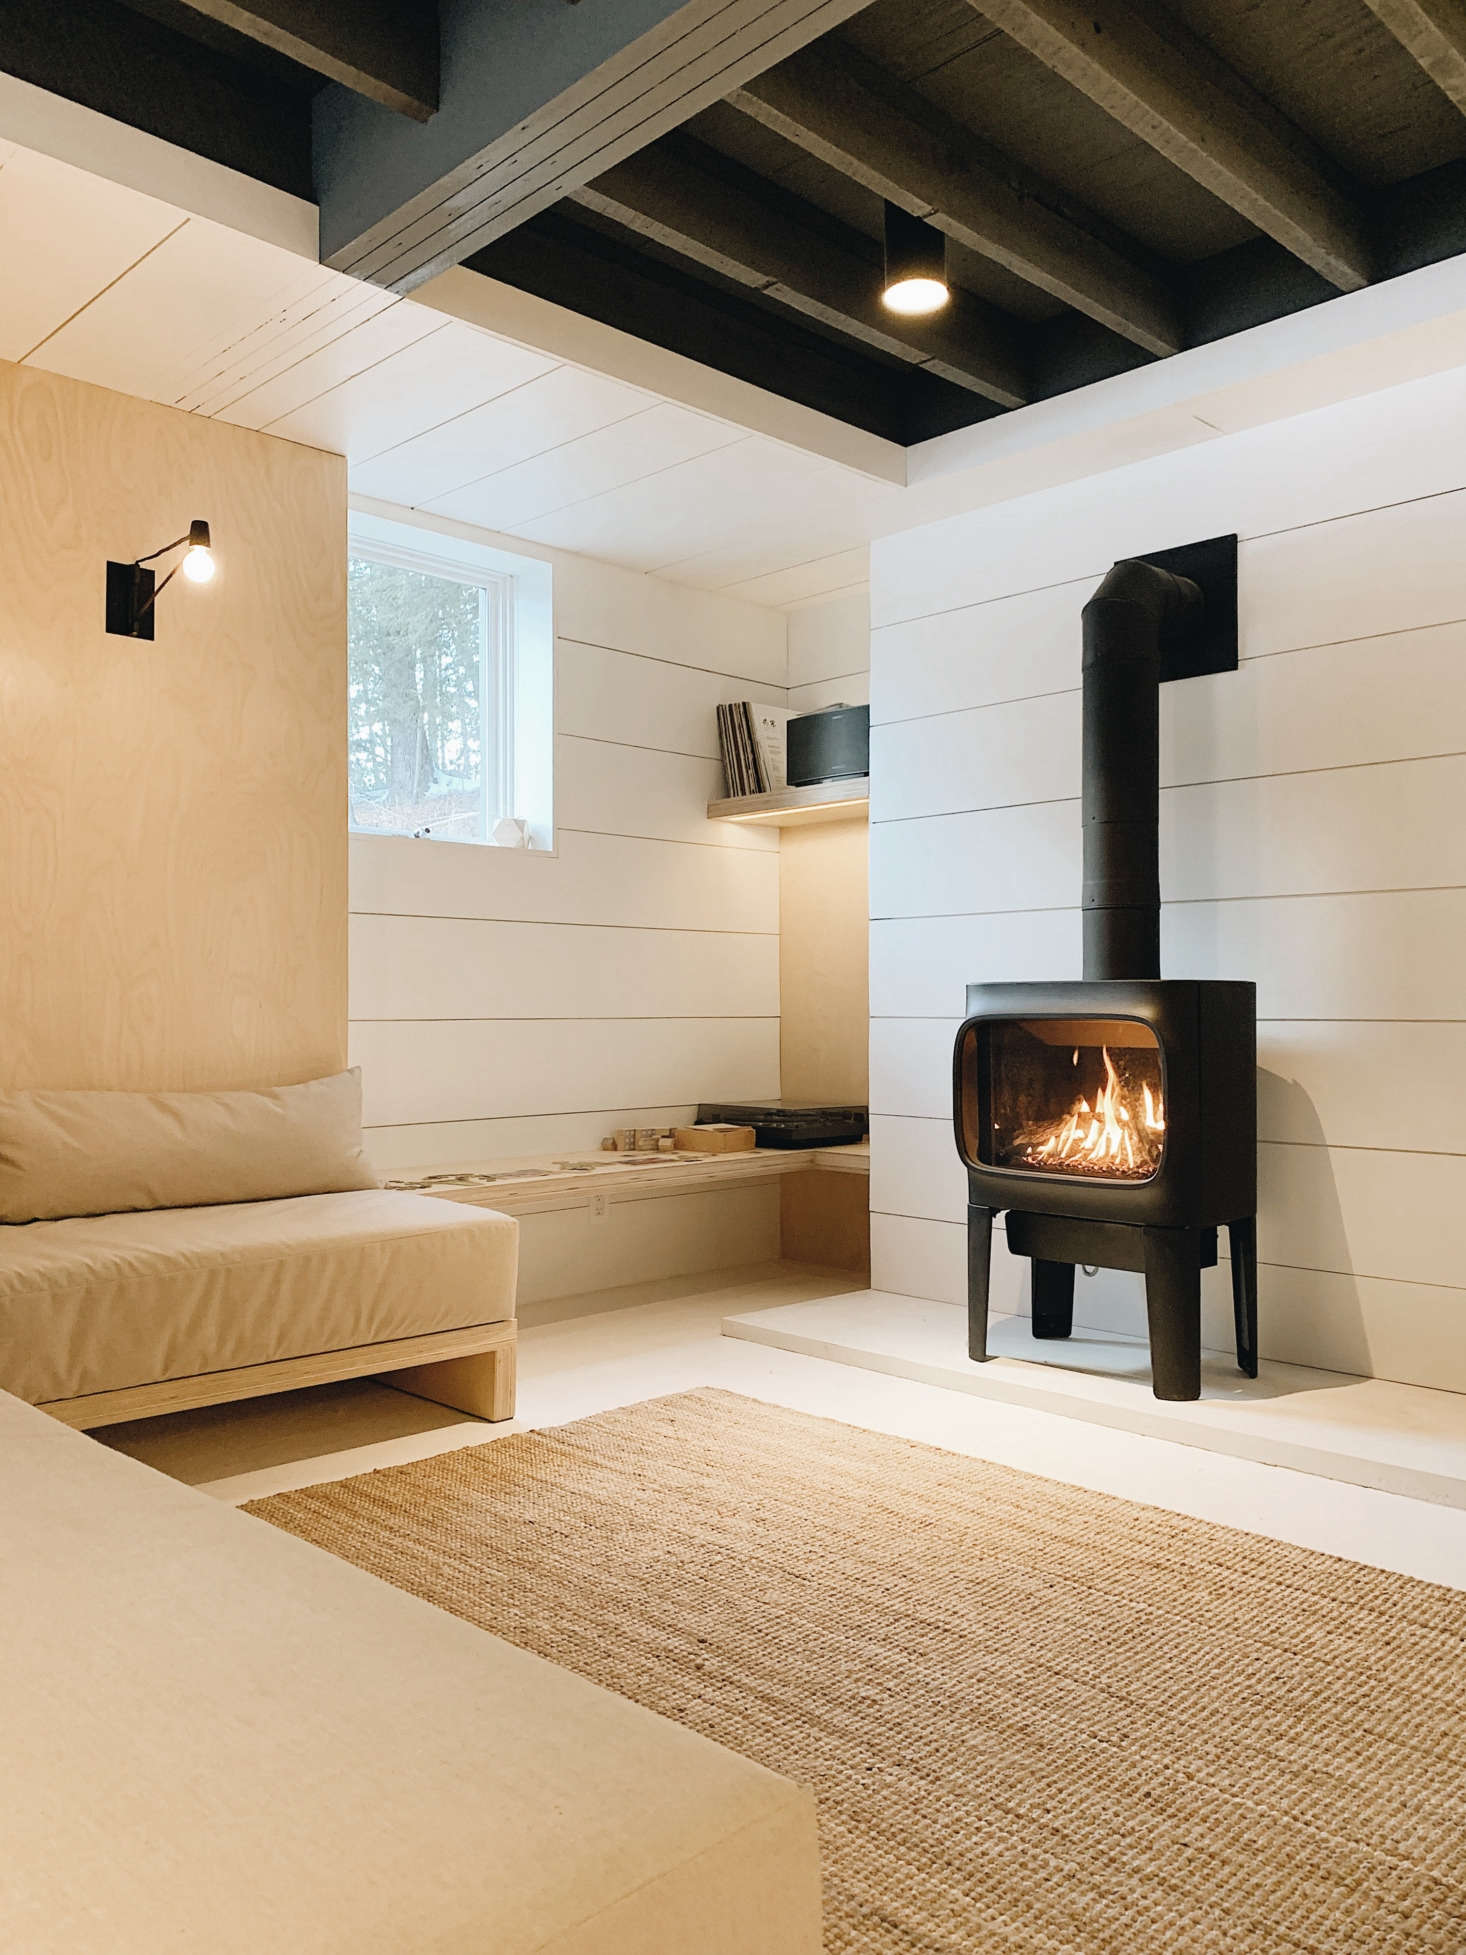 The two sofas can be pushed together to form a double bed. The existing fireplace was replaced with a gas stove, the Jøtul GF 305 (controllable via the Nest thermostat), and the walls are clad in shiplap paneling painted Valspar&#8